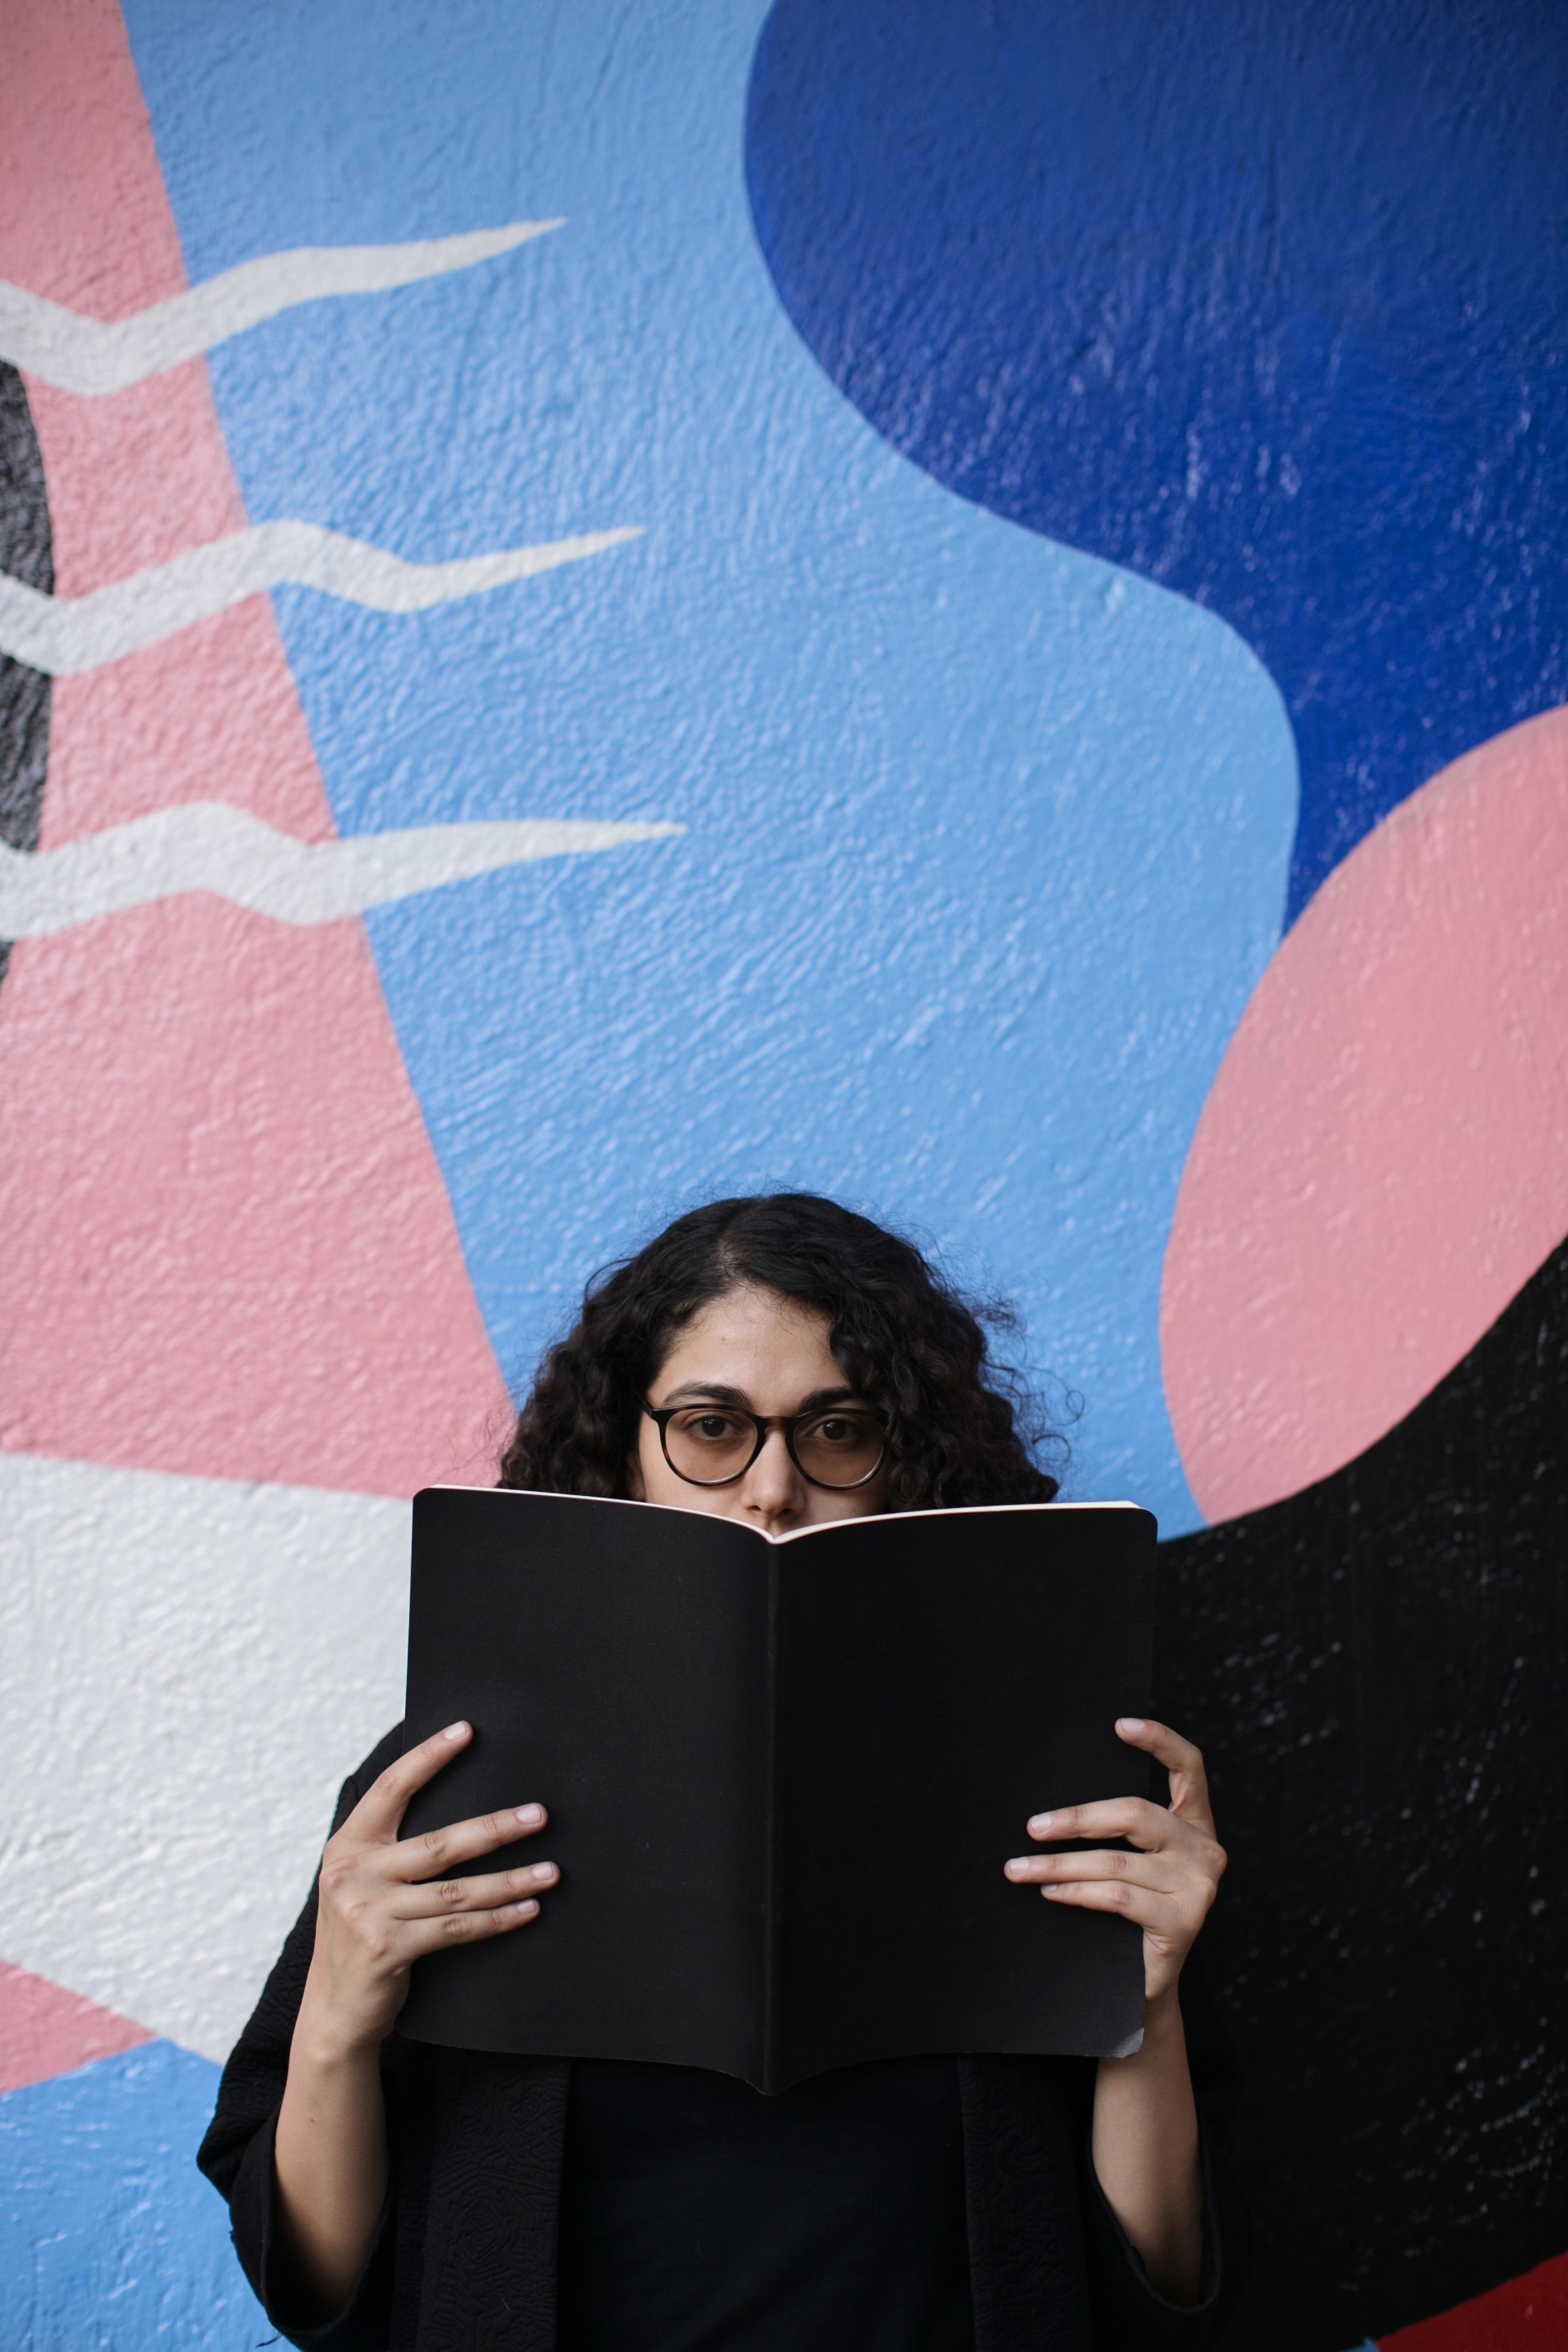 An annoyed woman reads a book in front of a large colorful mural.